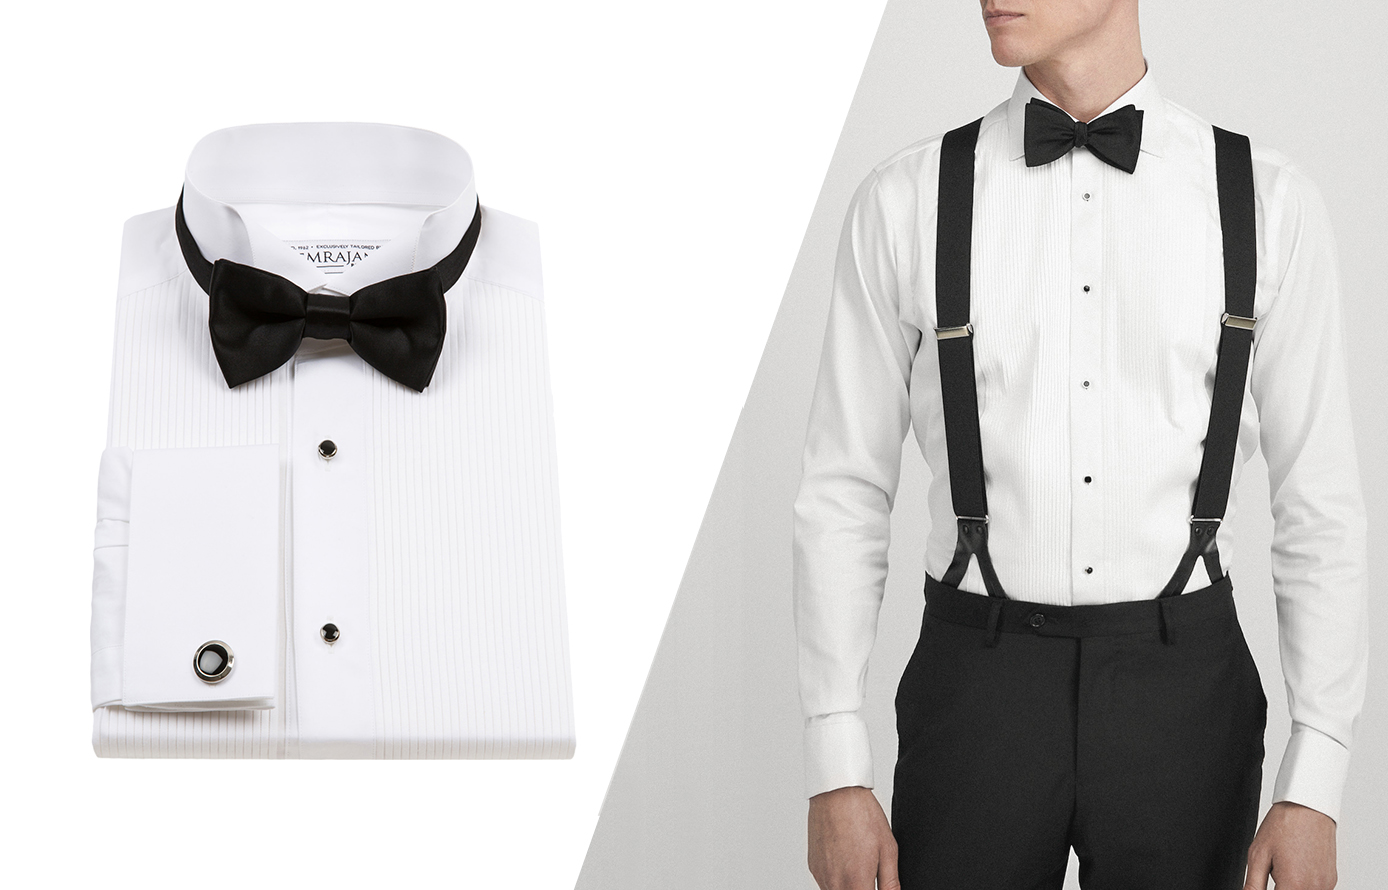 how to wear suspenders with tuxedo shirt